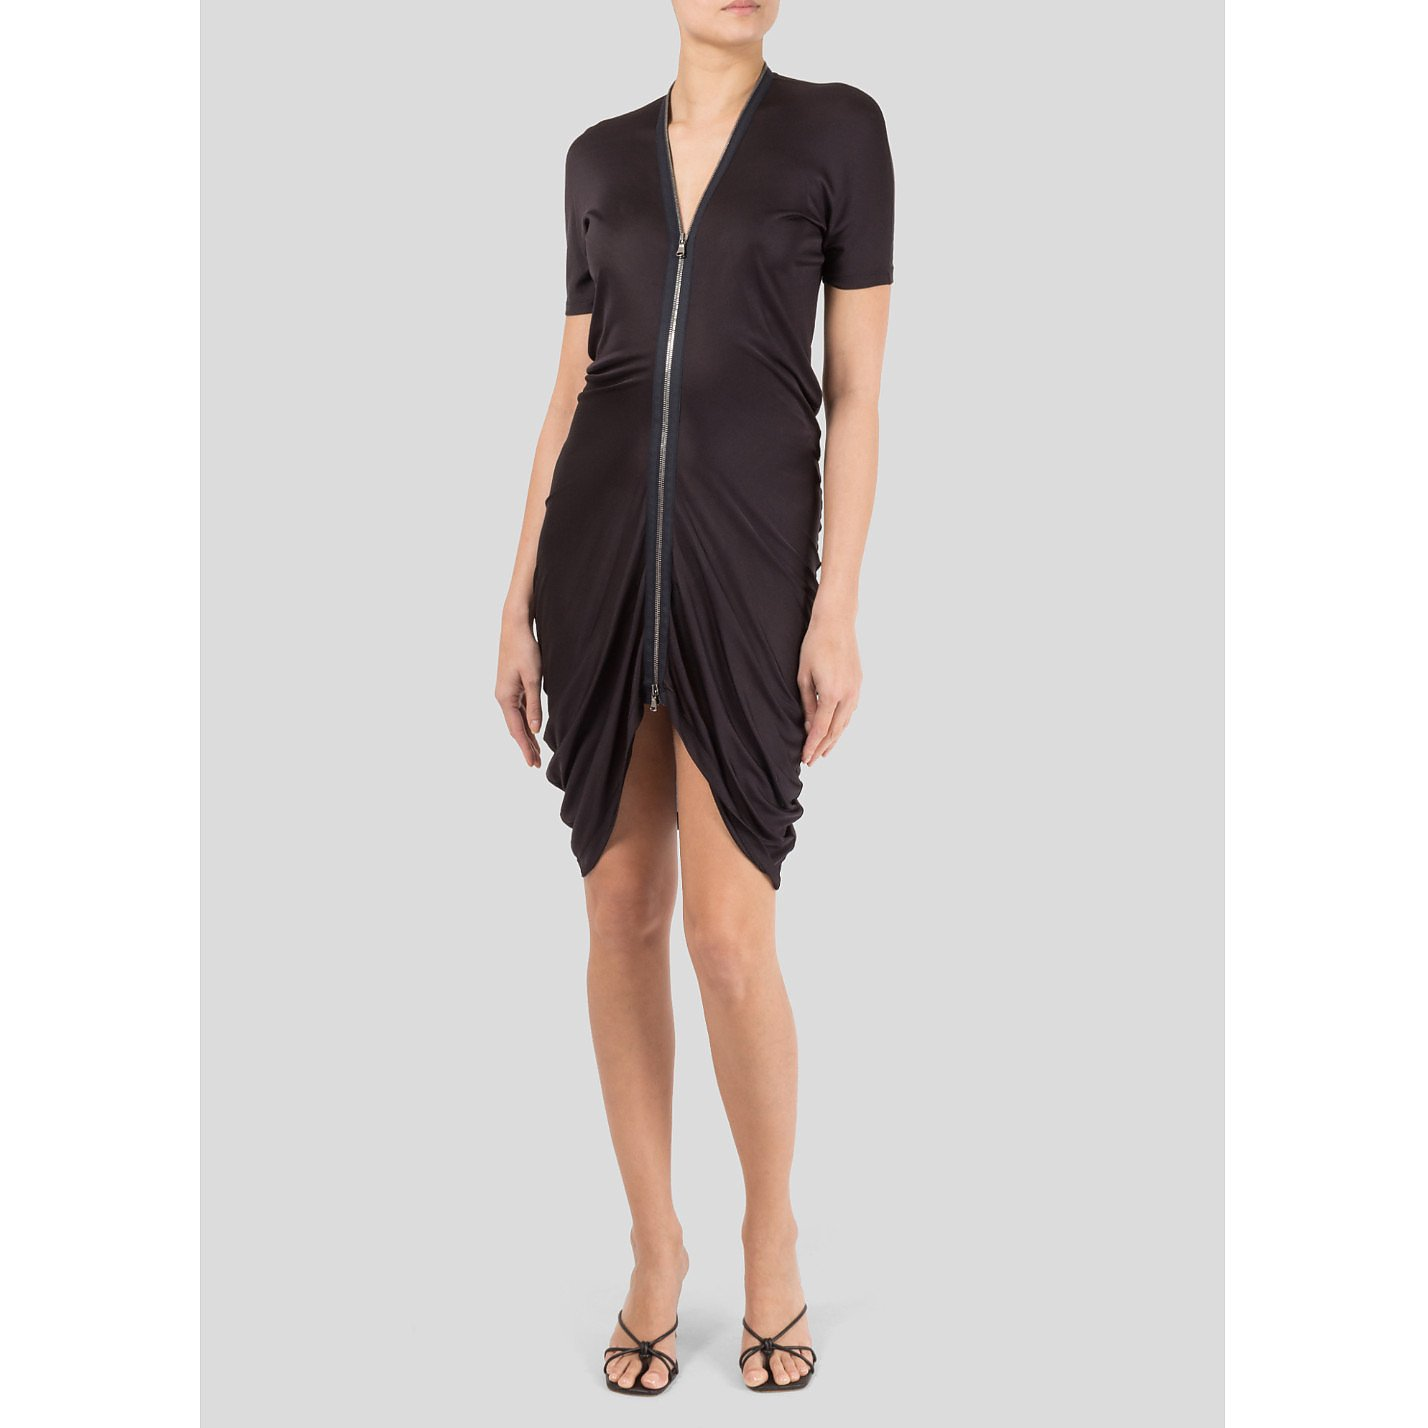 Alexander McQueen Mini Dress with Front Zip